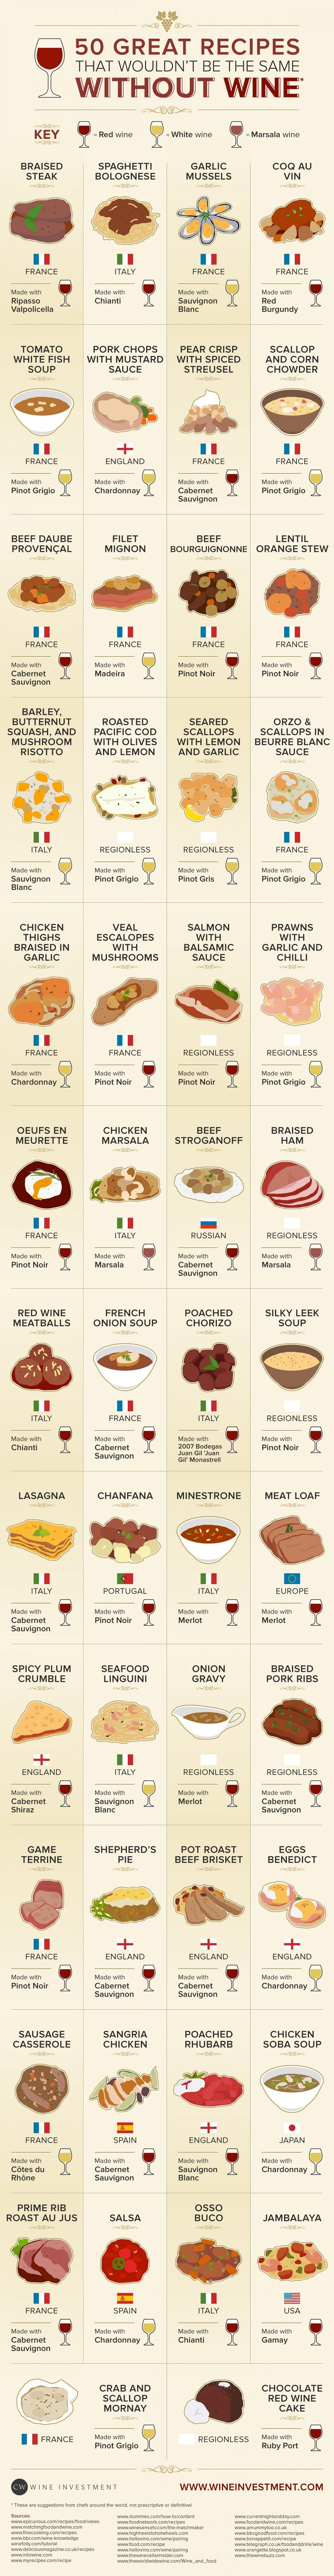 50 Great Recipes That Wouldn't Be the Same Without Wine #infographic